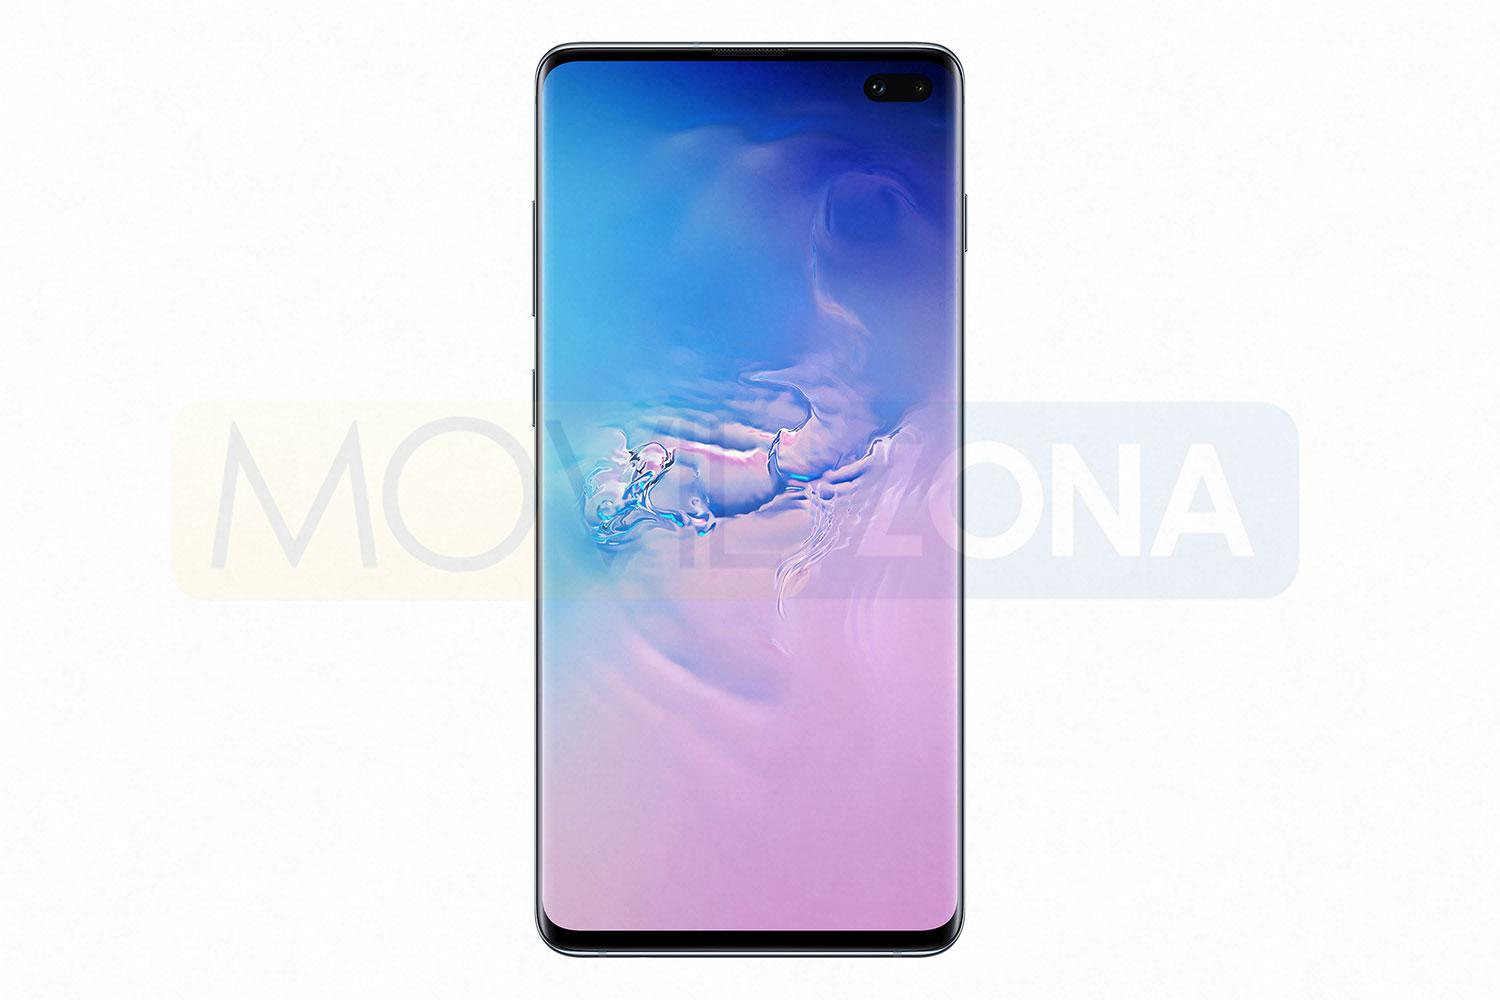 Samsung Galaxy S10 Plus frontal con Android